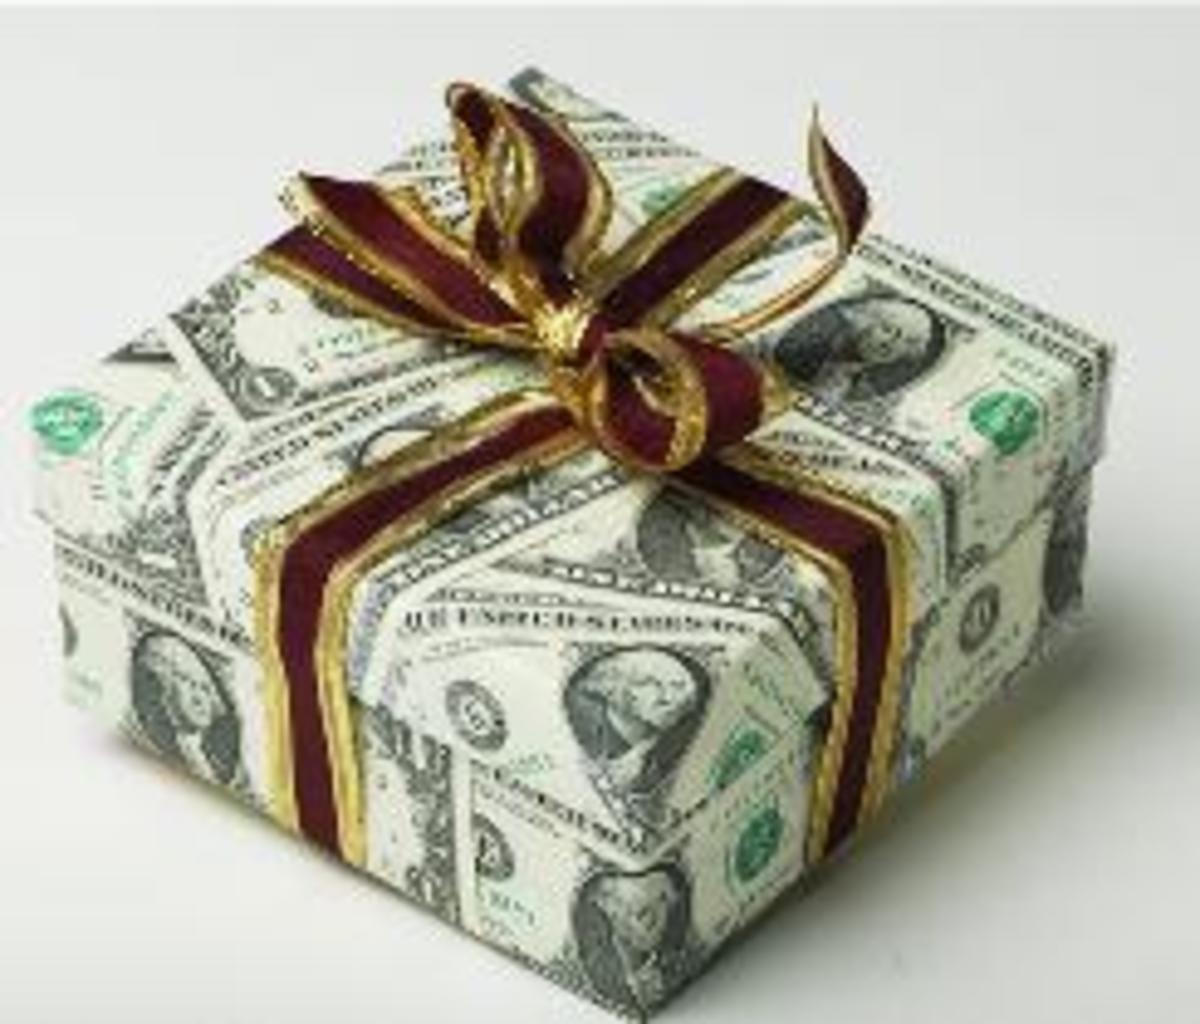 Appropriate Wedding Gift Dollar Amount : Money as a Gift: Appropriate Amounts for Birthdays